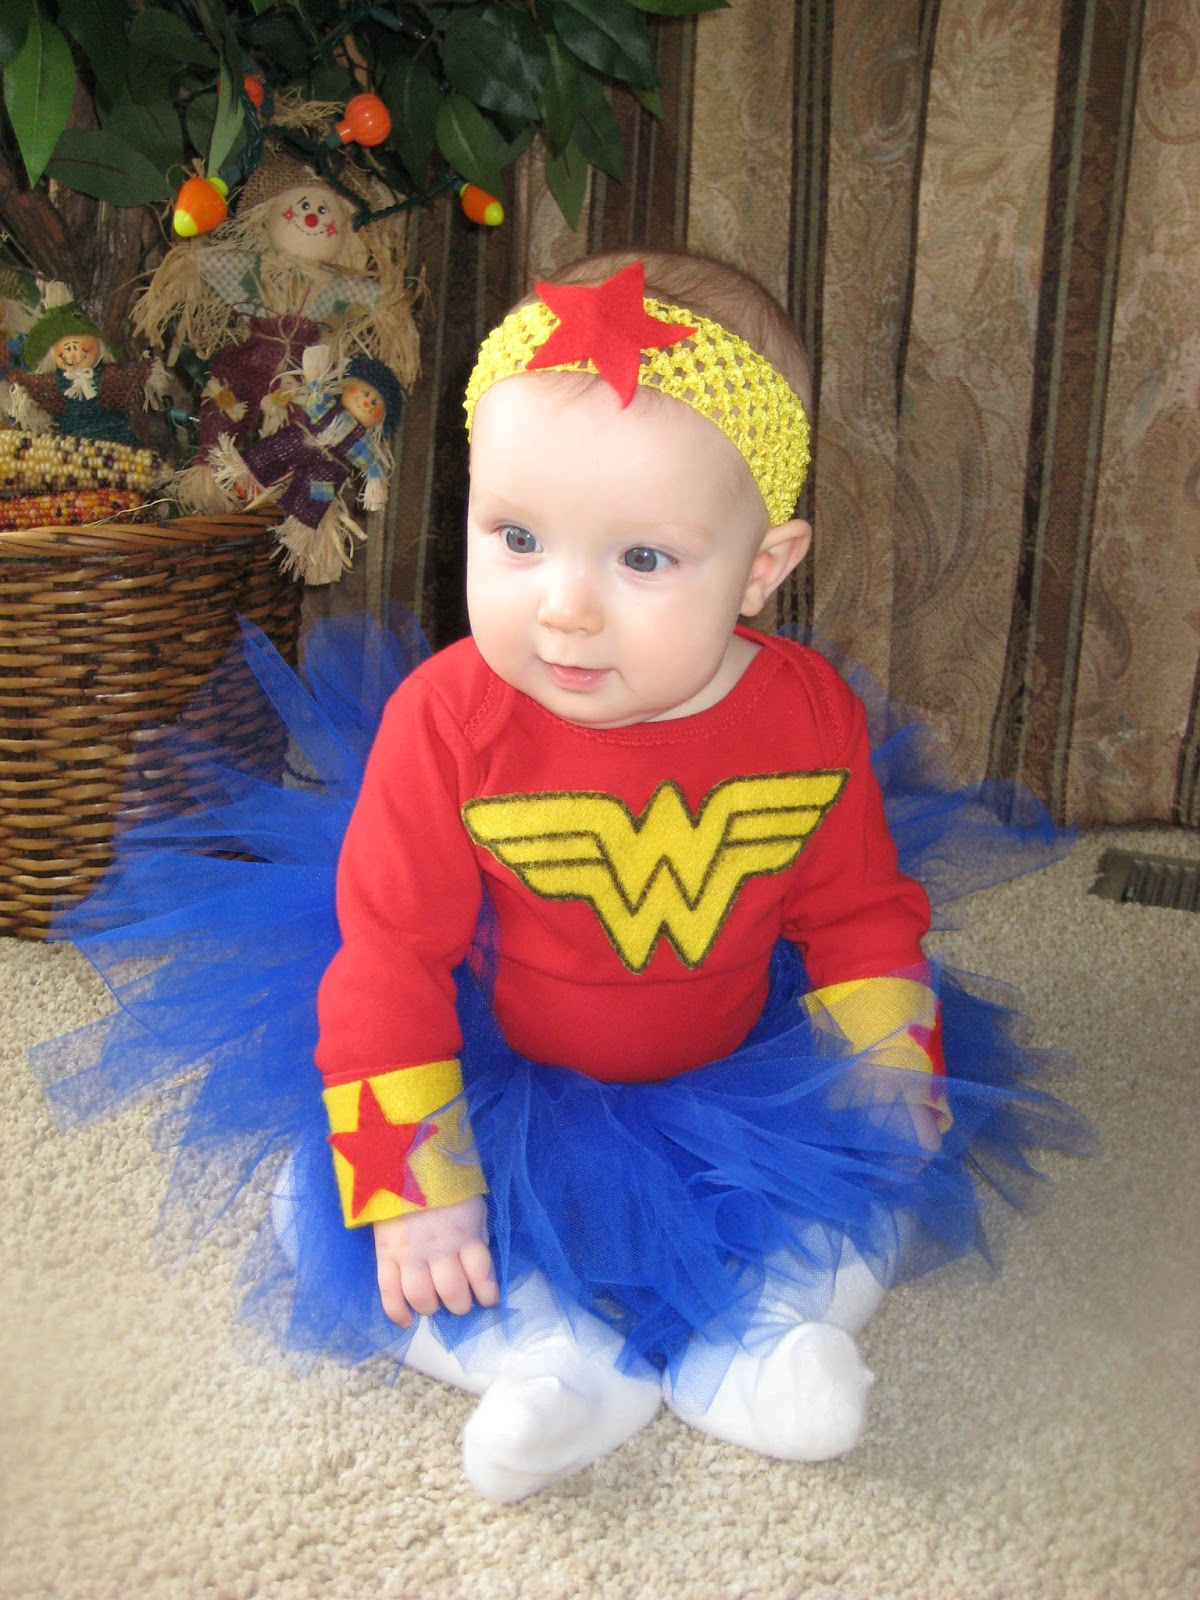 Baby Halloween Costumes Boy And Girl.Cute Halloween Costume Ideas For Baby Girl Toffee Art